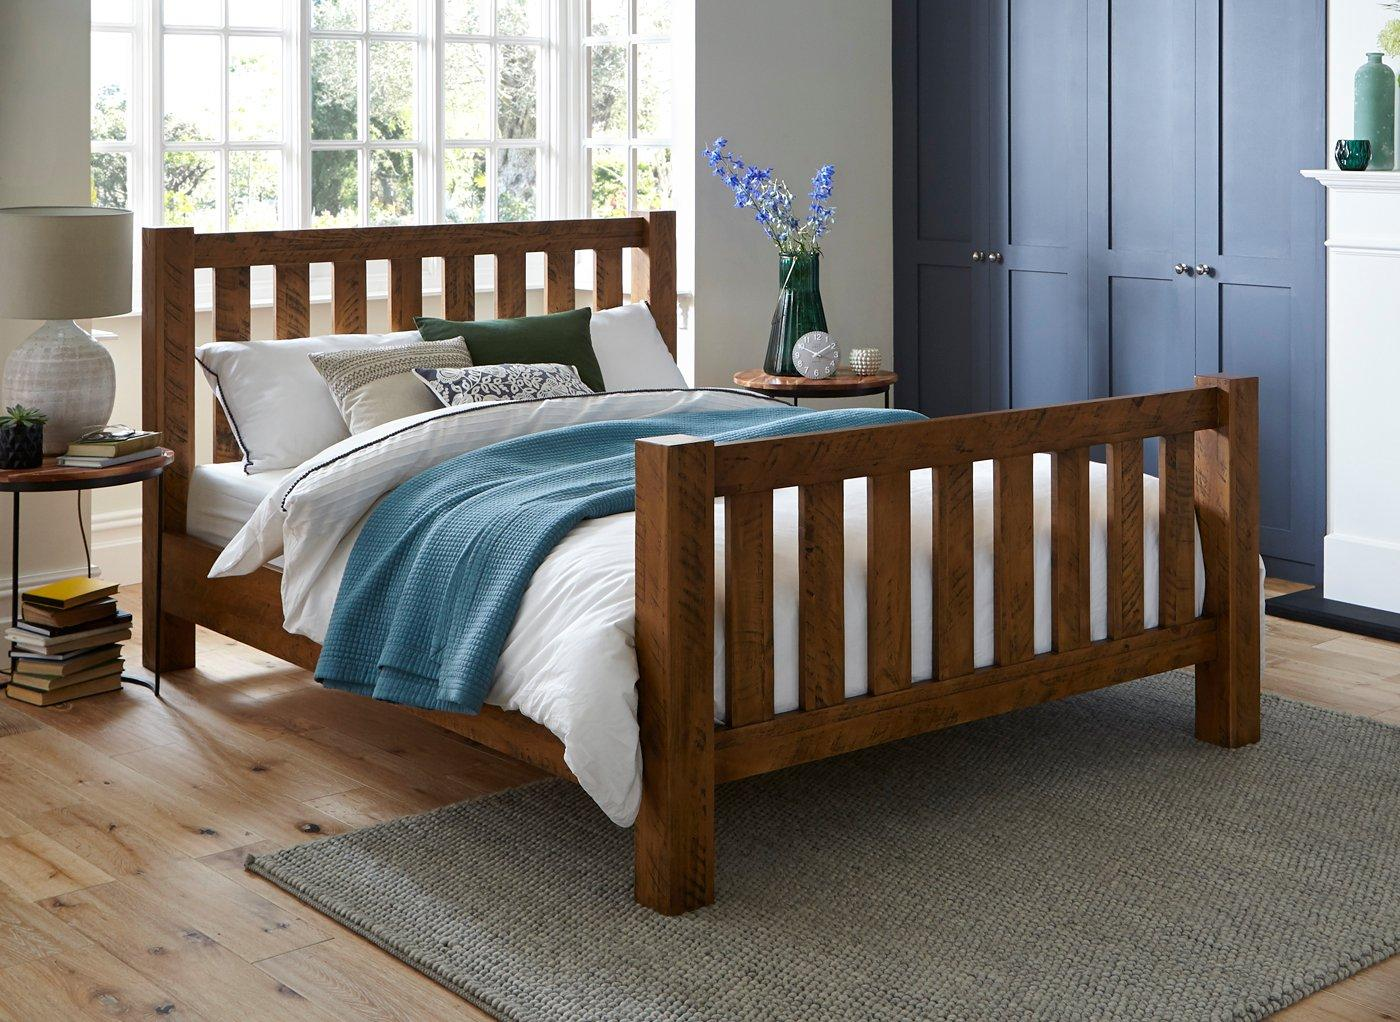 moore-wooden-bed-frame